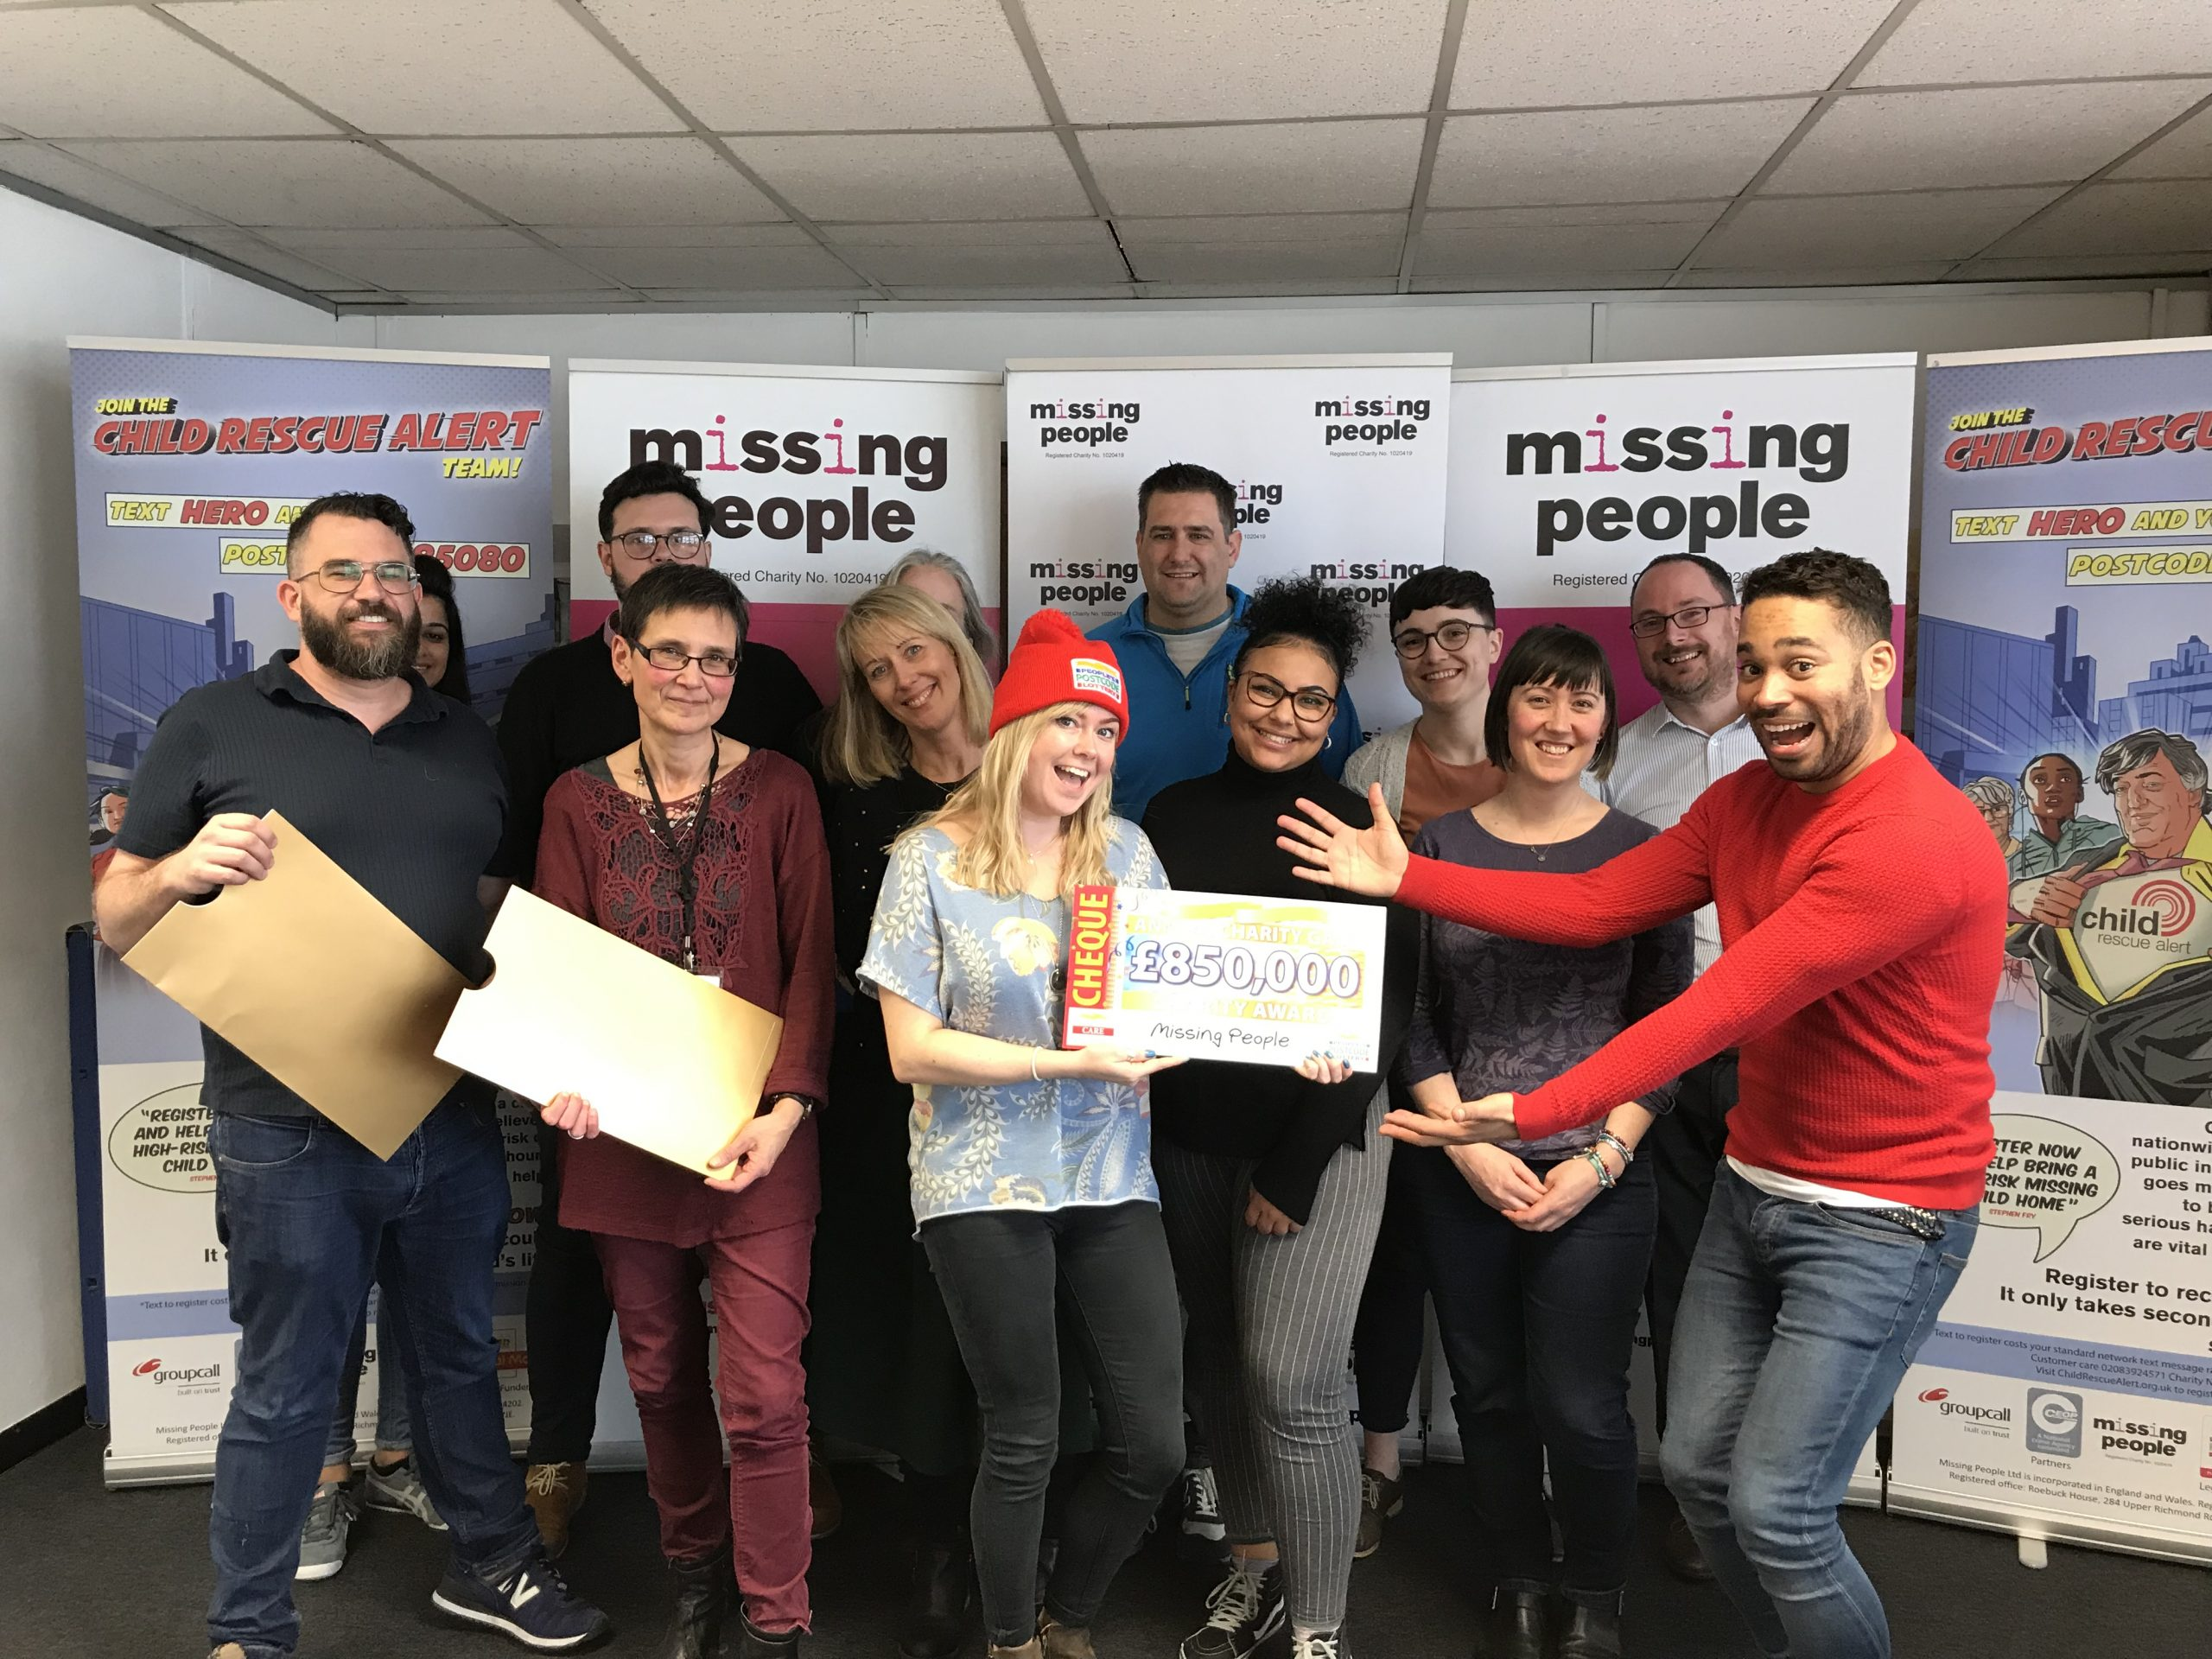 Missing People celebrating receiving new funding from People's Postcode Lottery at their office in Richmond, London